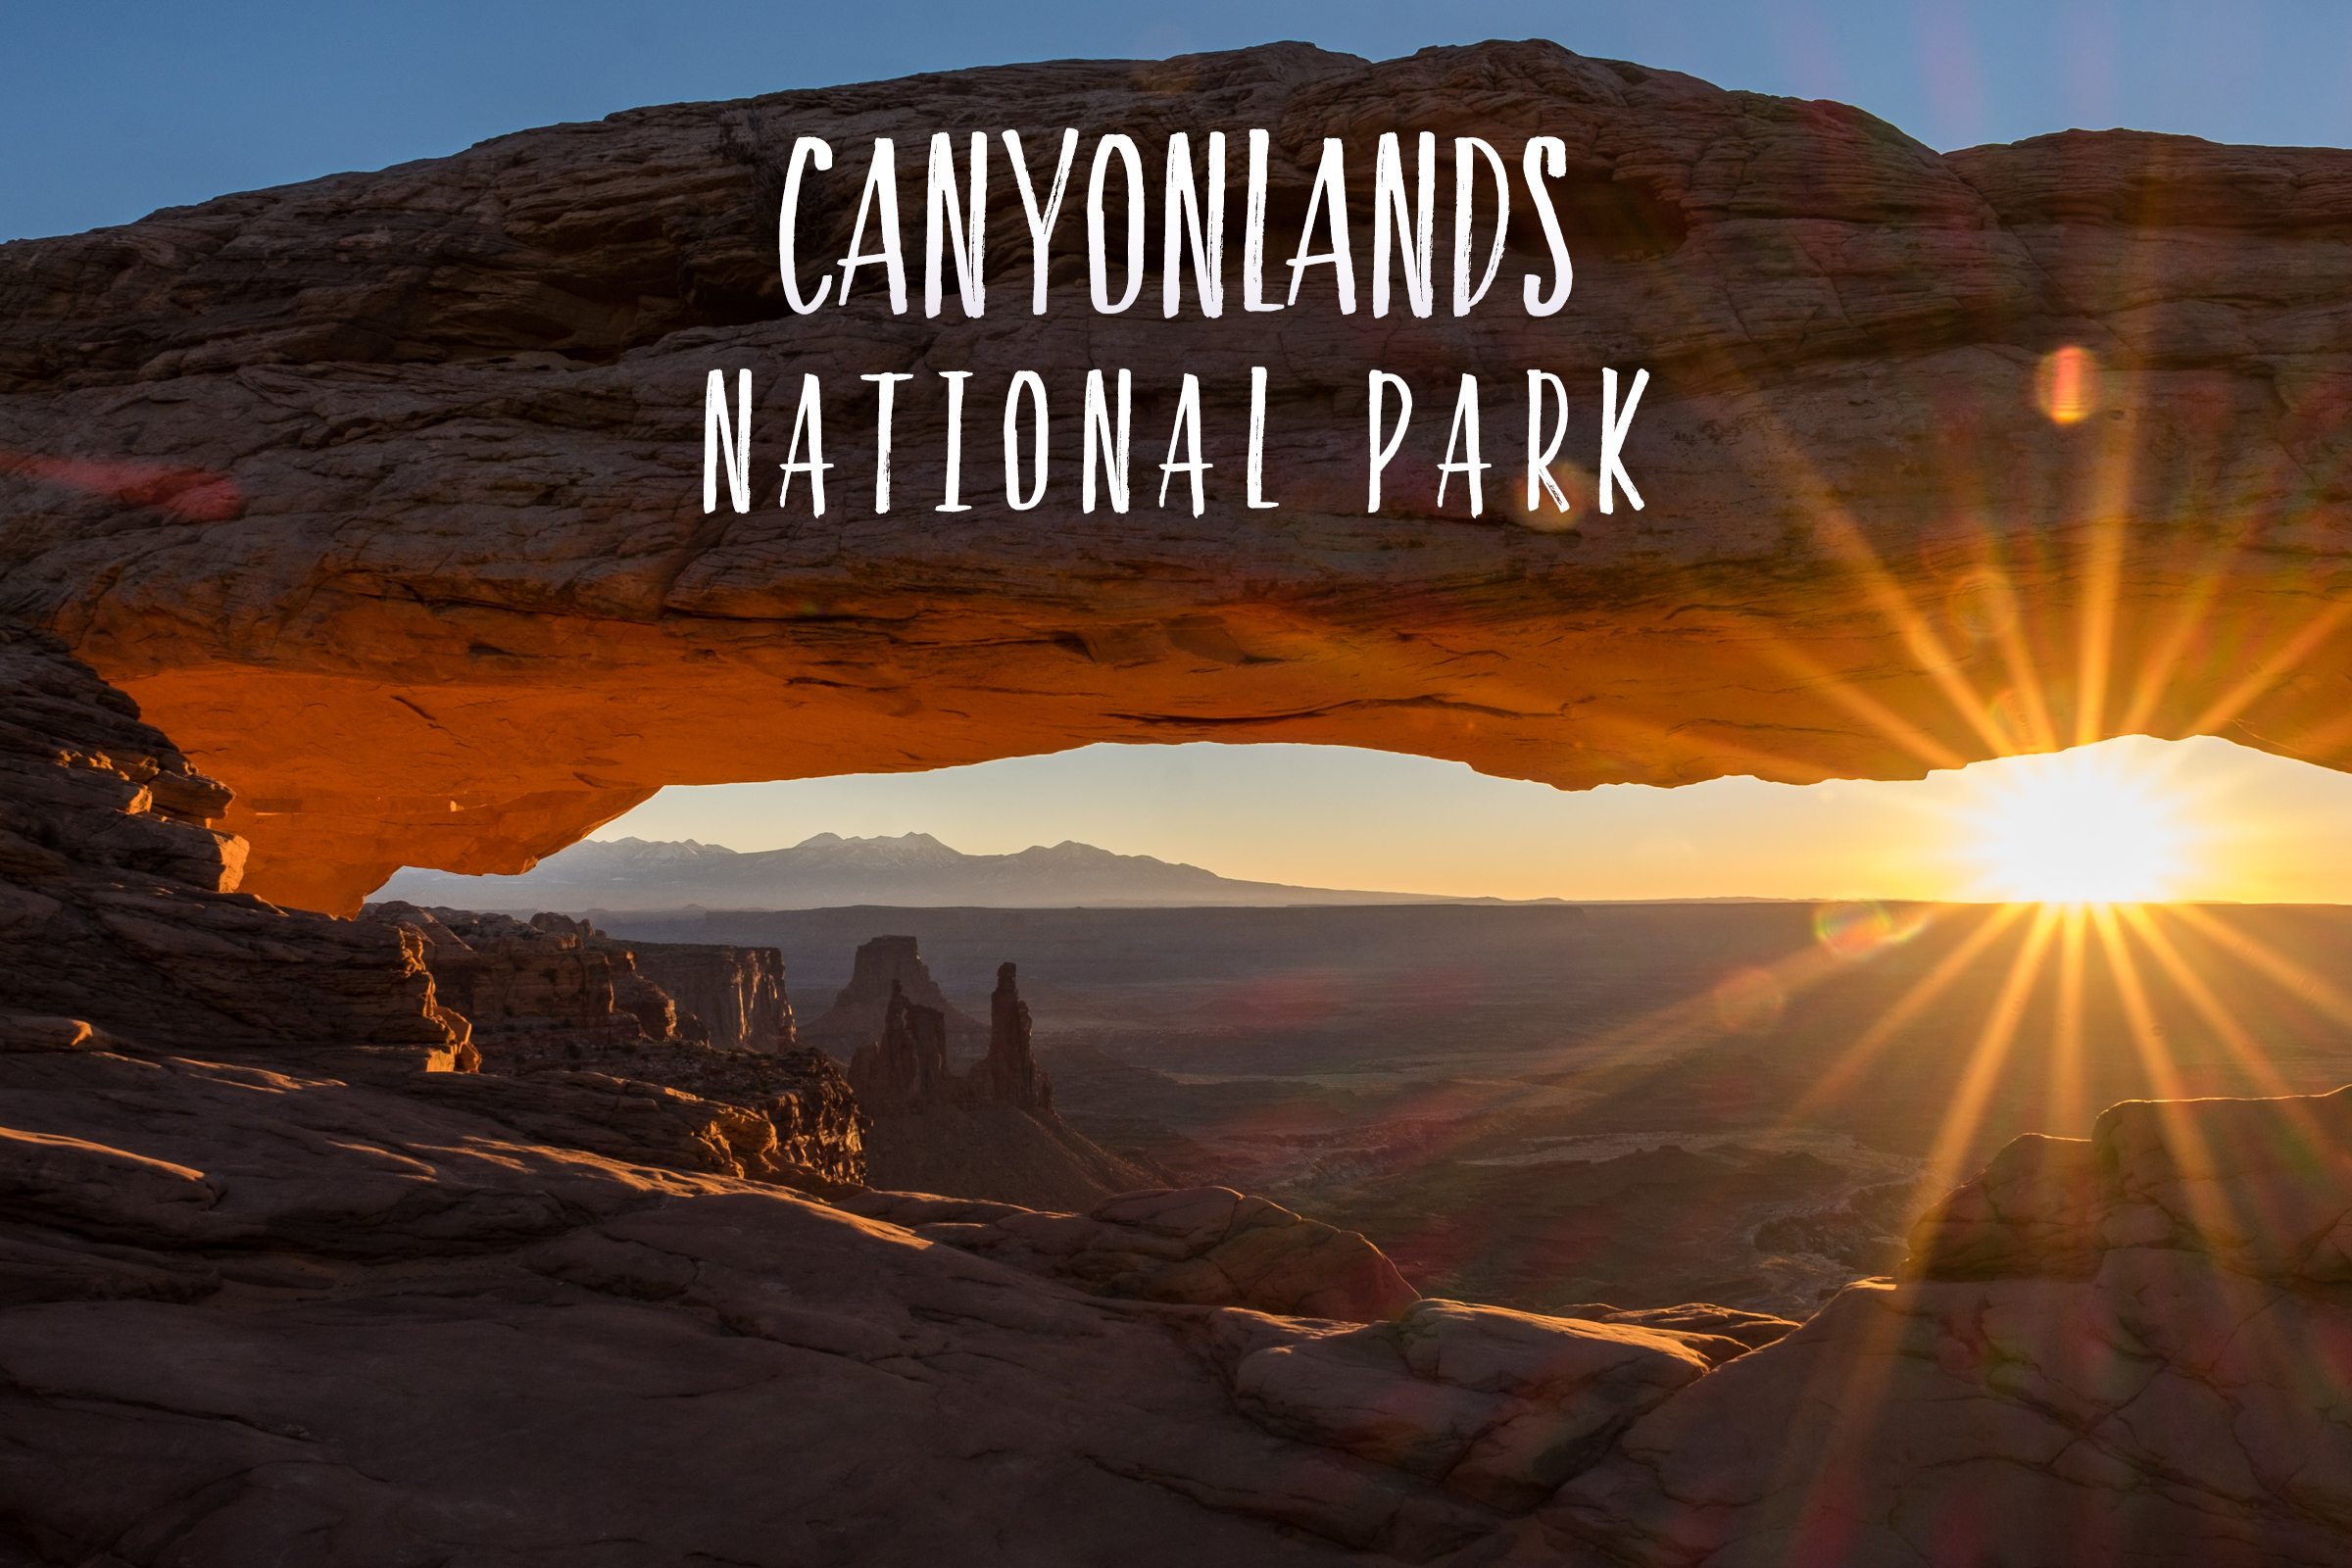 59in52_np-page_canyonlands.jpg